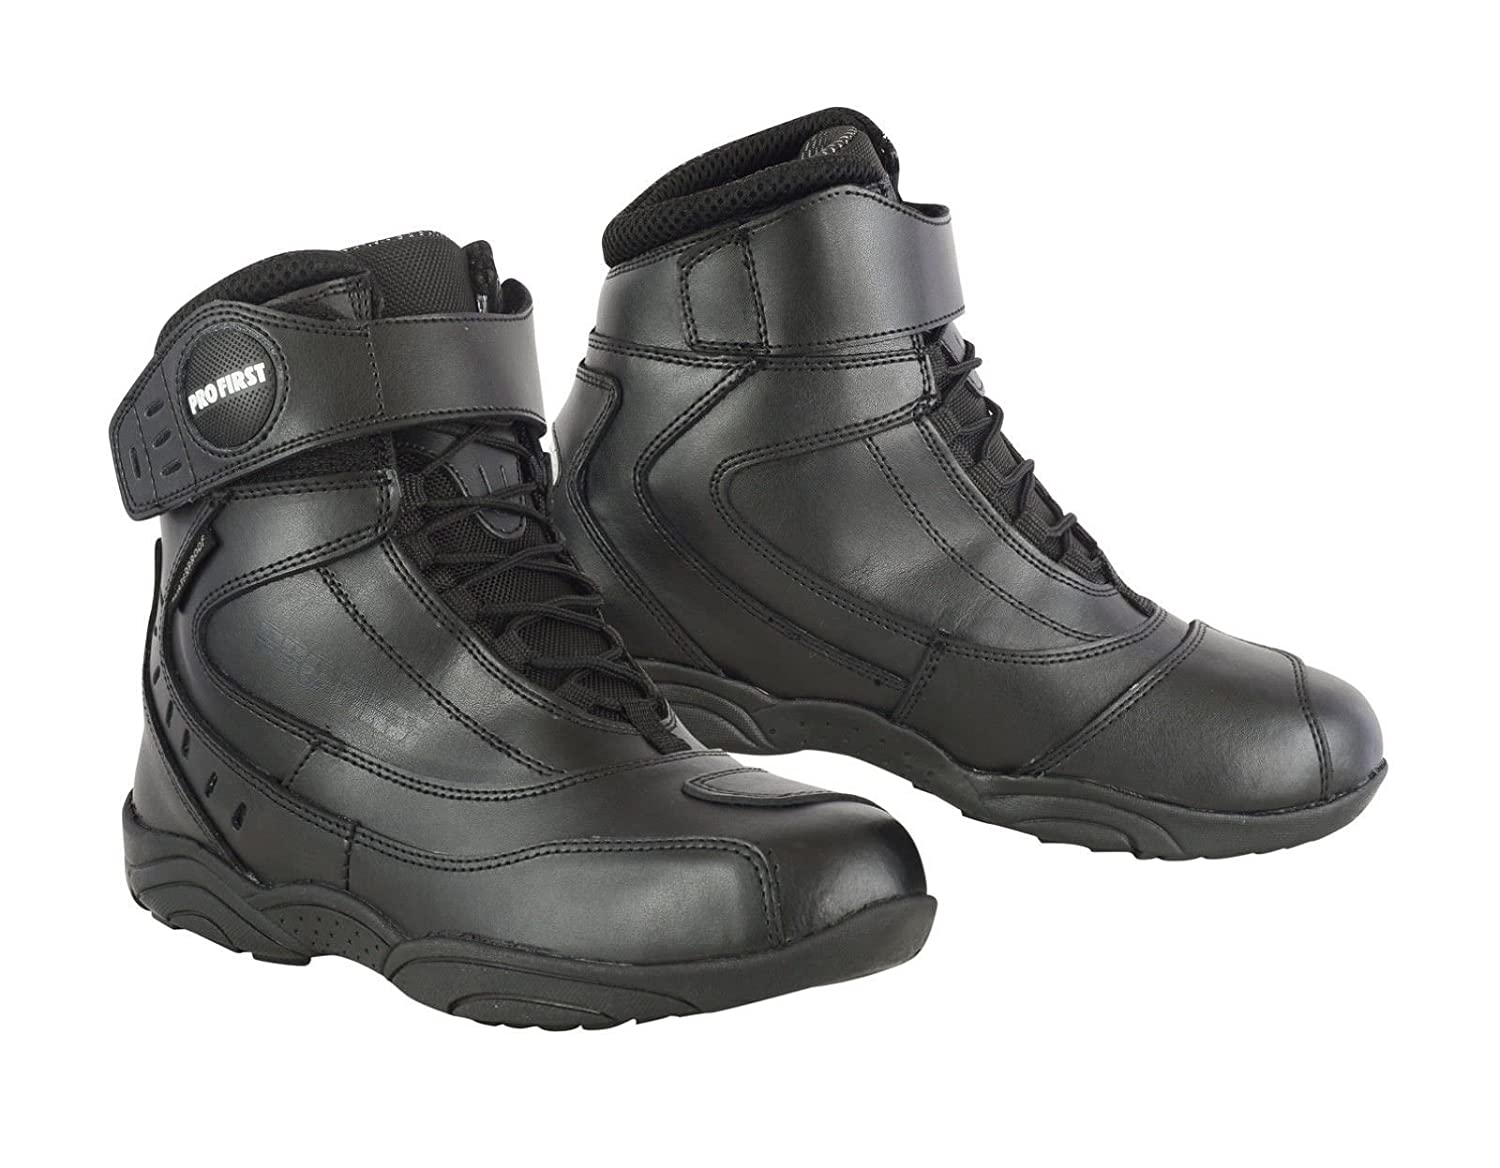 REXTEK Winter Mens Motorcycle Boots Rider Boots Black Waterproof Motorbike Leather Touring Shoes for Mens Boys 7 //EU 41